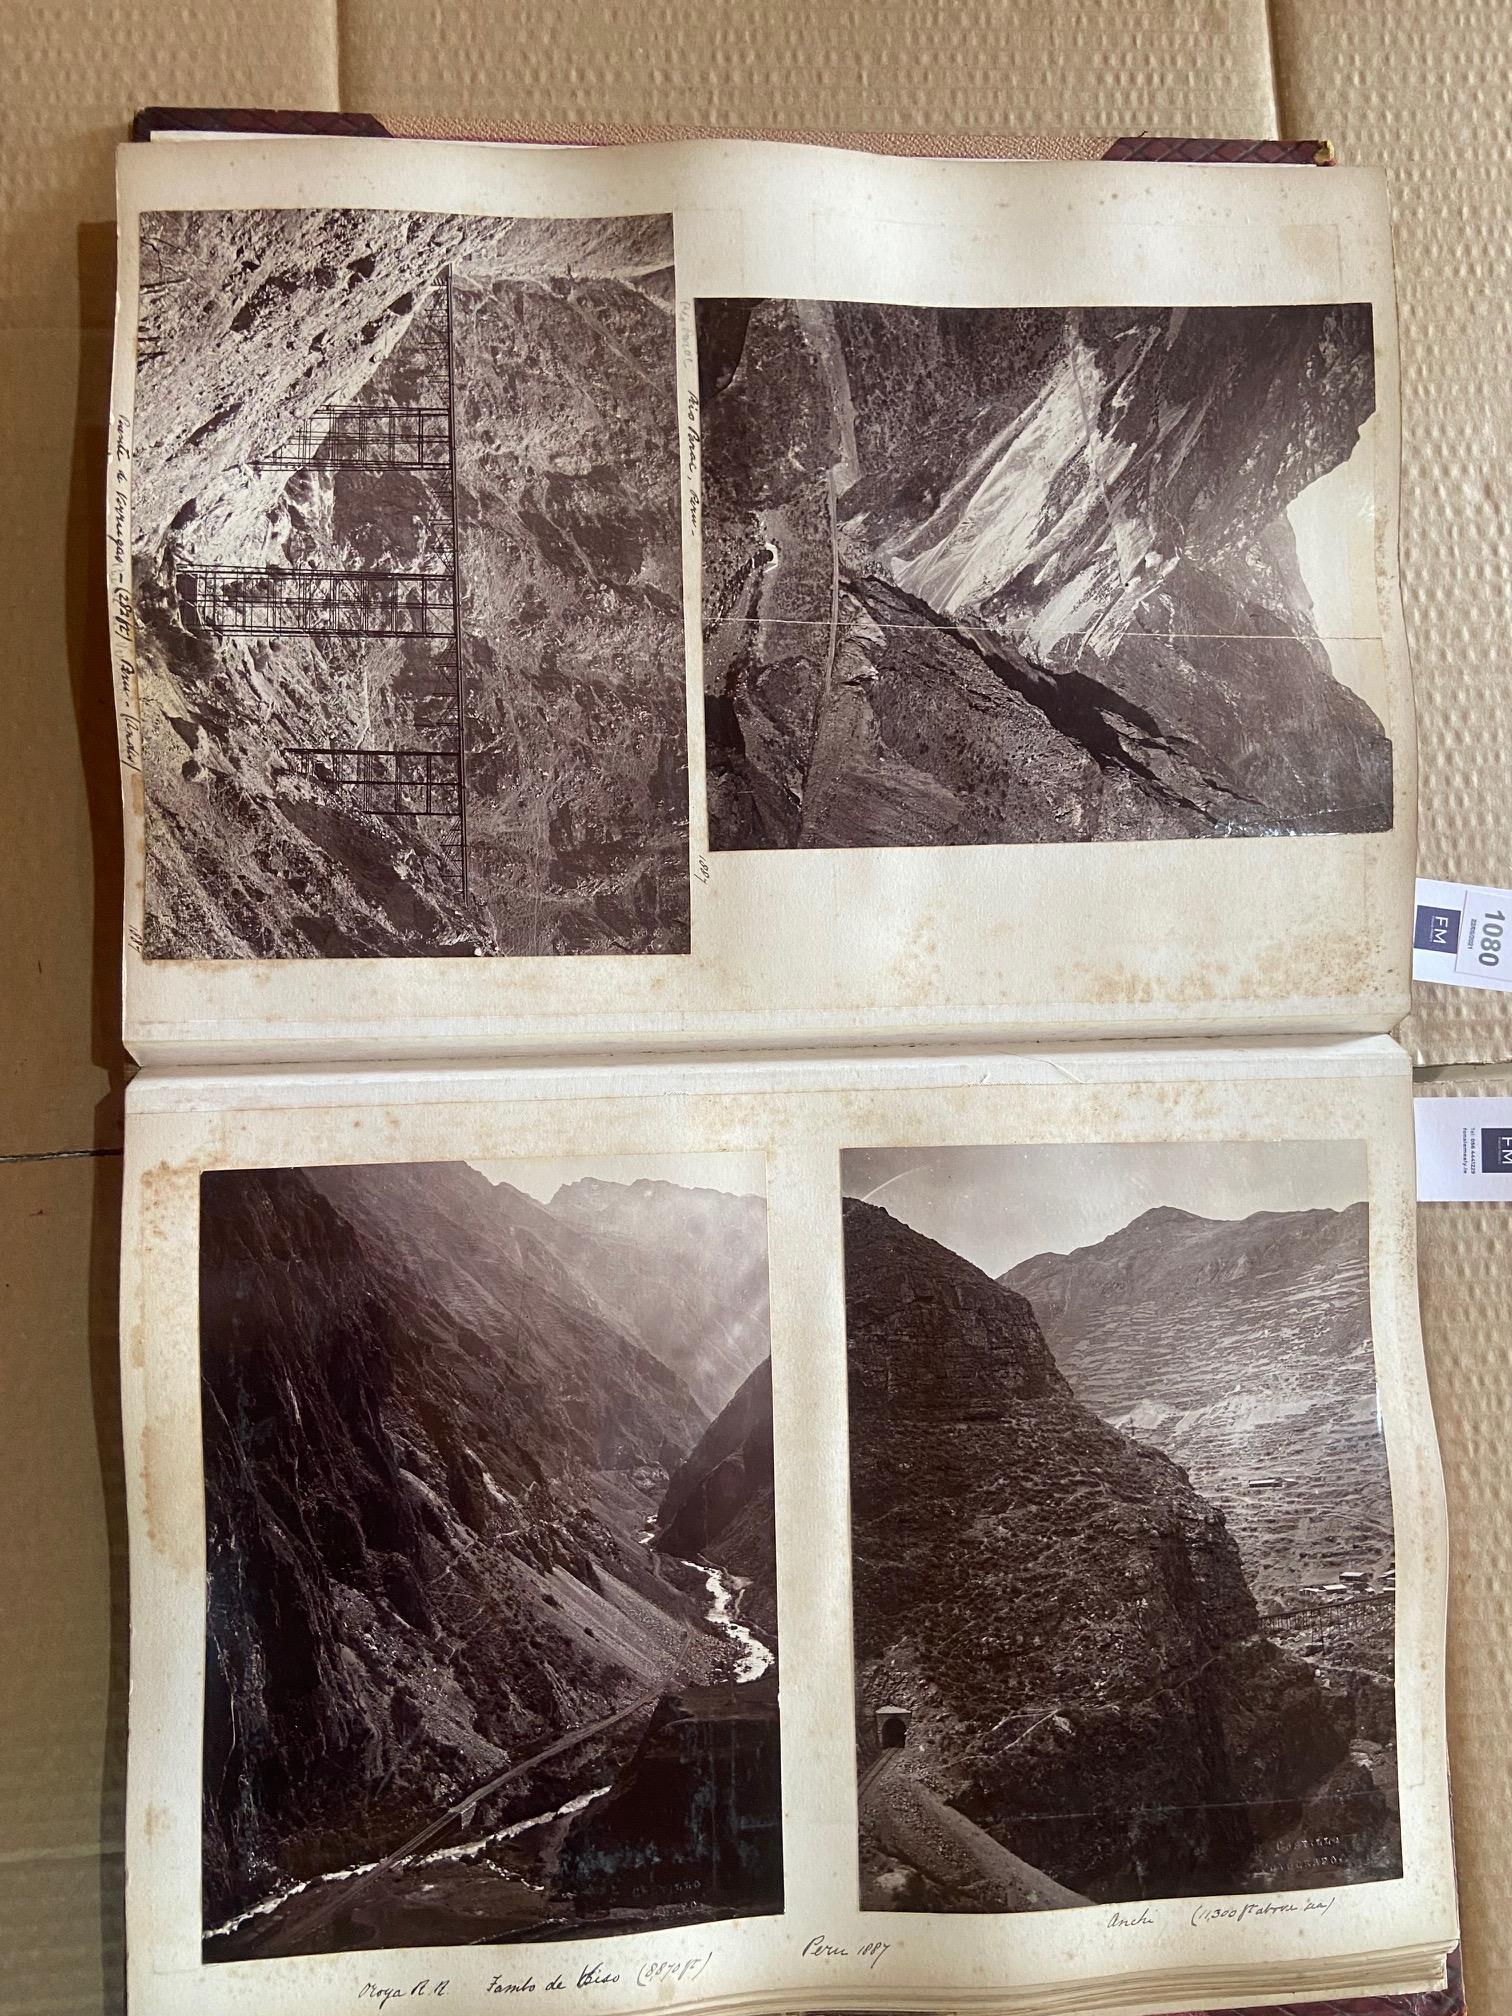 Photographs: Two large folio Albums of Photographs, each c. 1870 - 1890's. One Album contains - Image 7 of 31